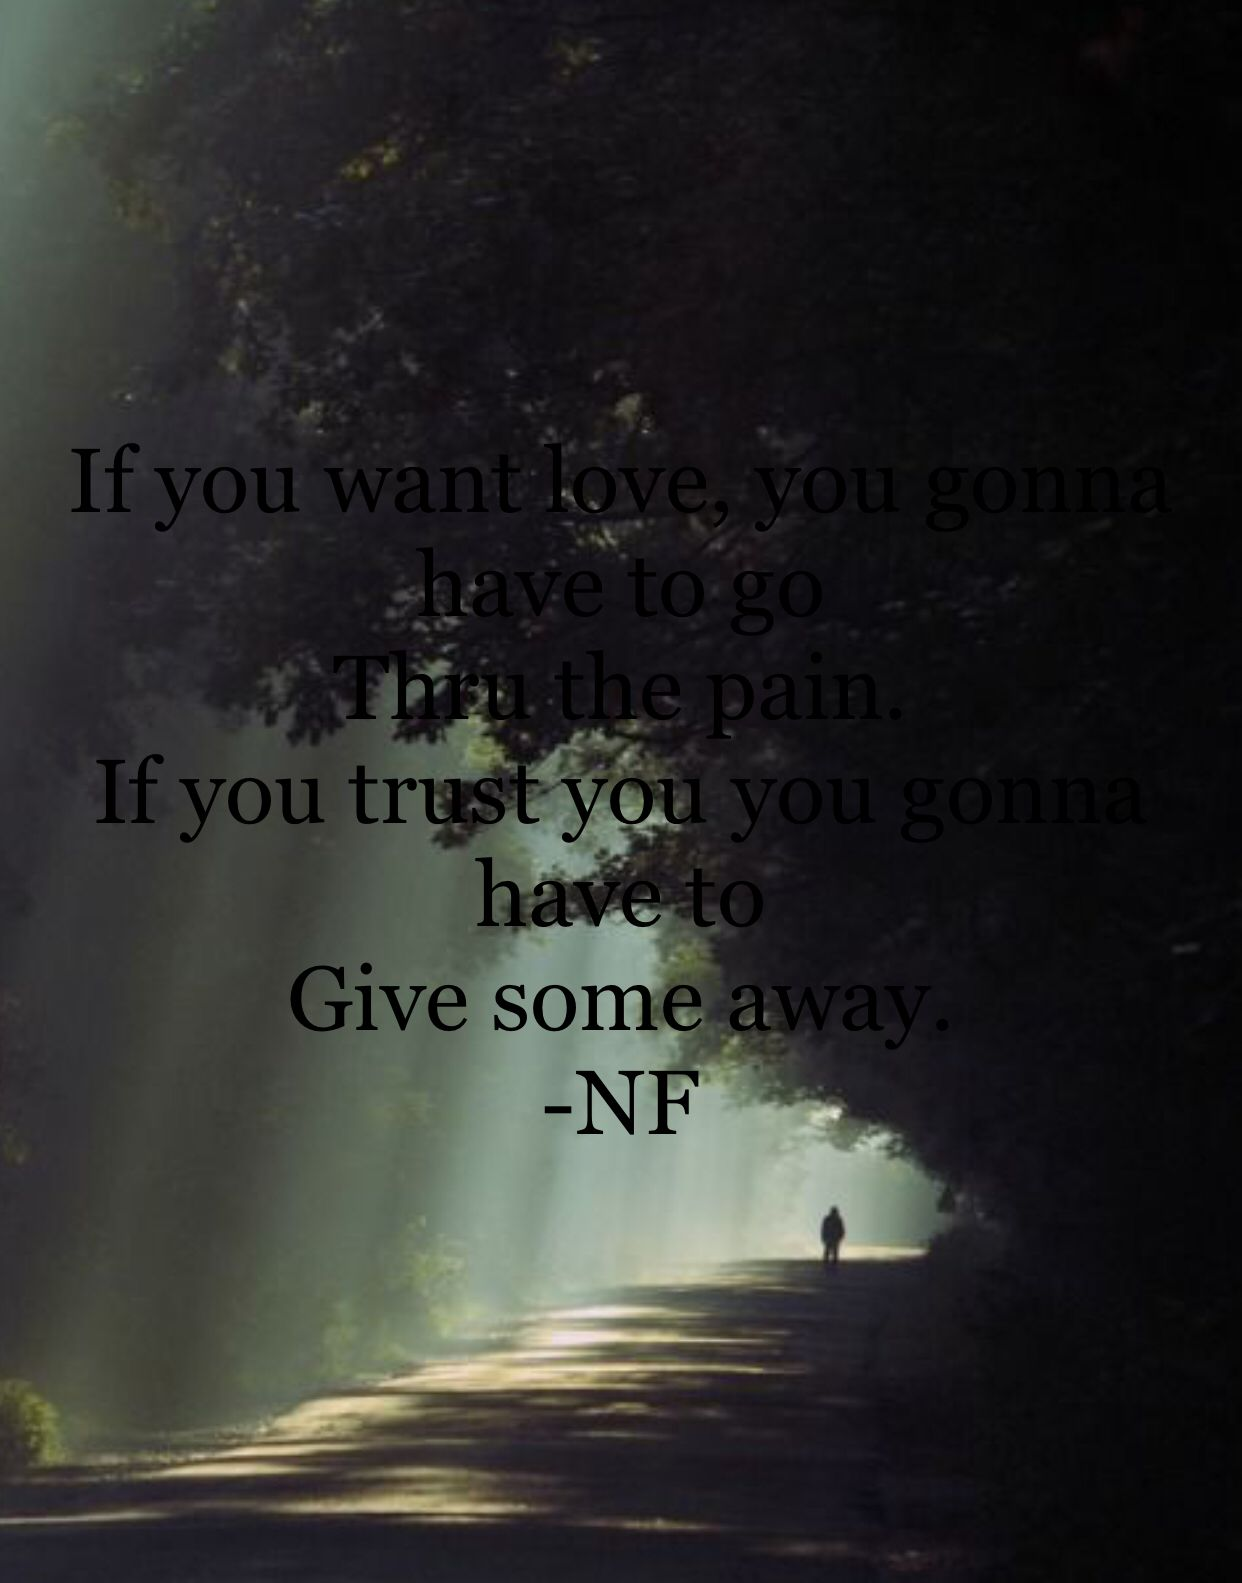 NF quote Nf quotes, Trust yourself, Quotes